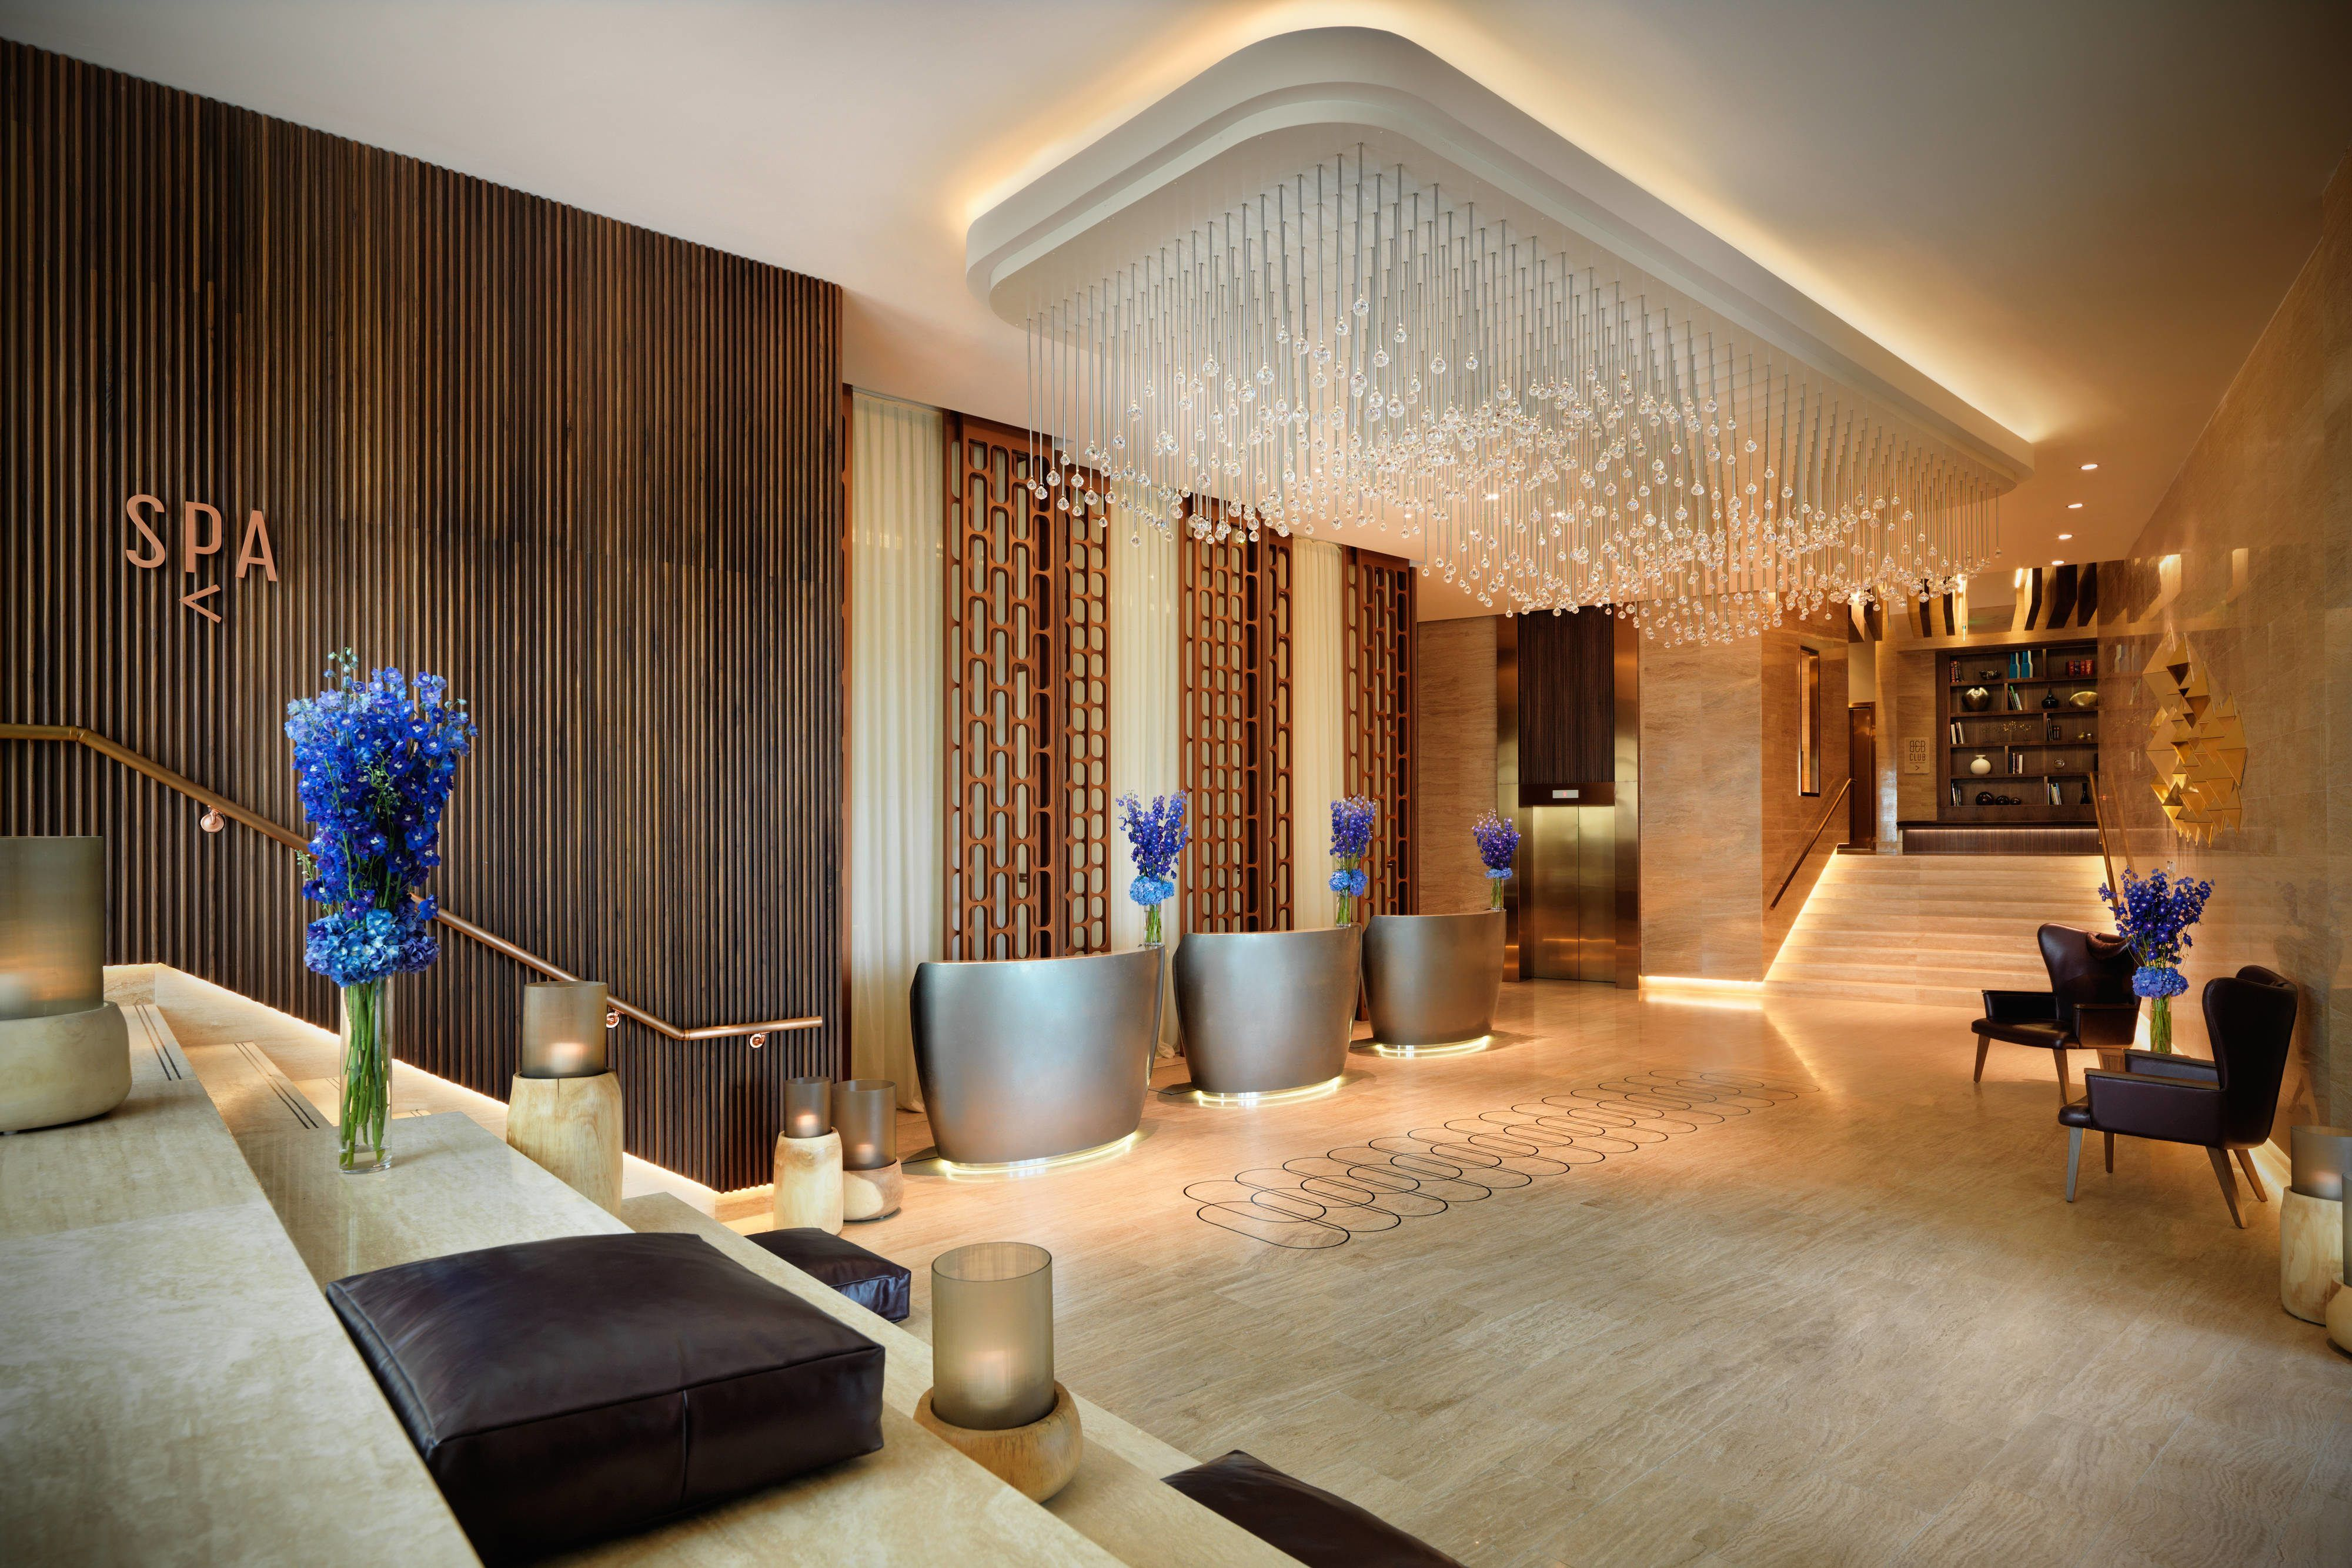 Intourist Hotel Baku Autograph Collection Lobby Travel Holiday Guestroom Hotel Luxury Amenities Hotel Industry